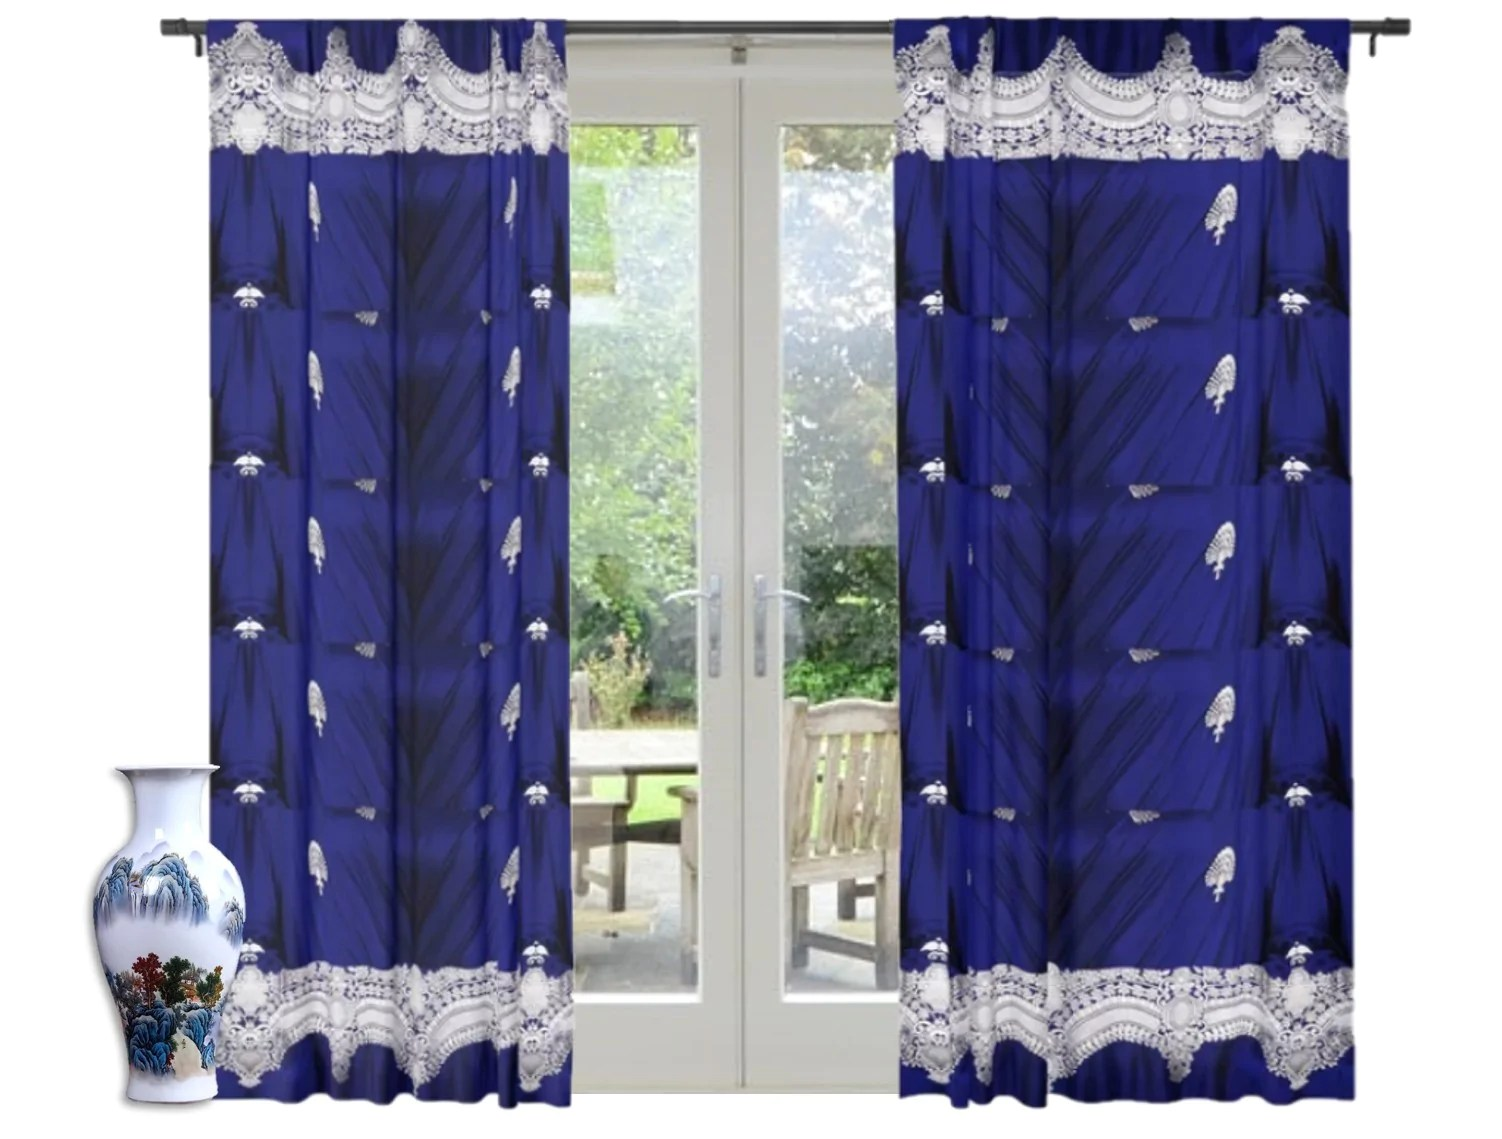 drapery living room curtains blue decorative curtains indian style design